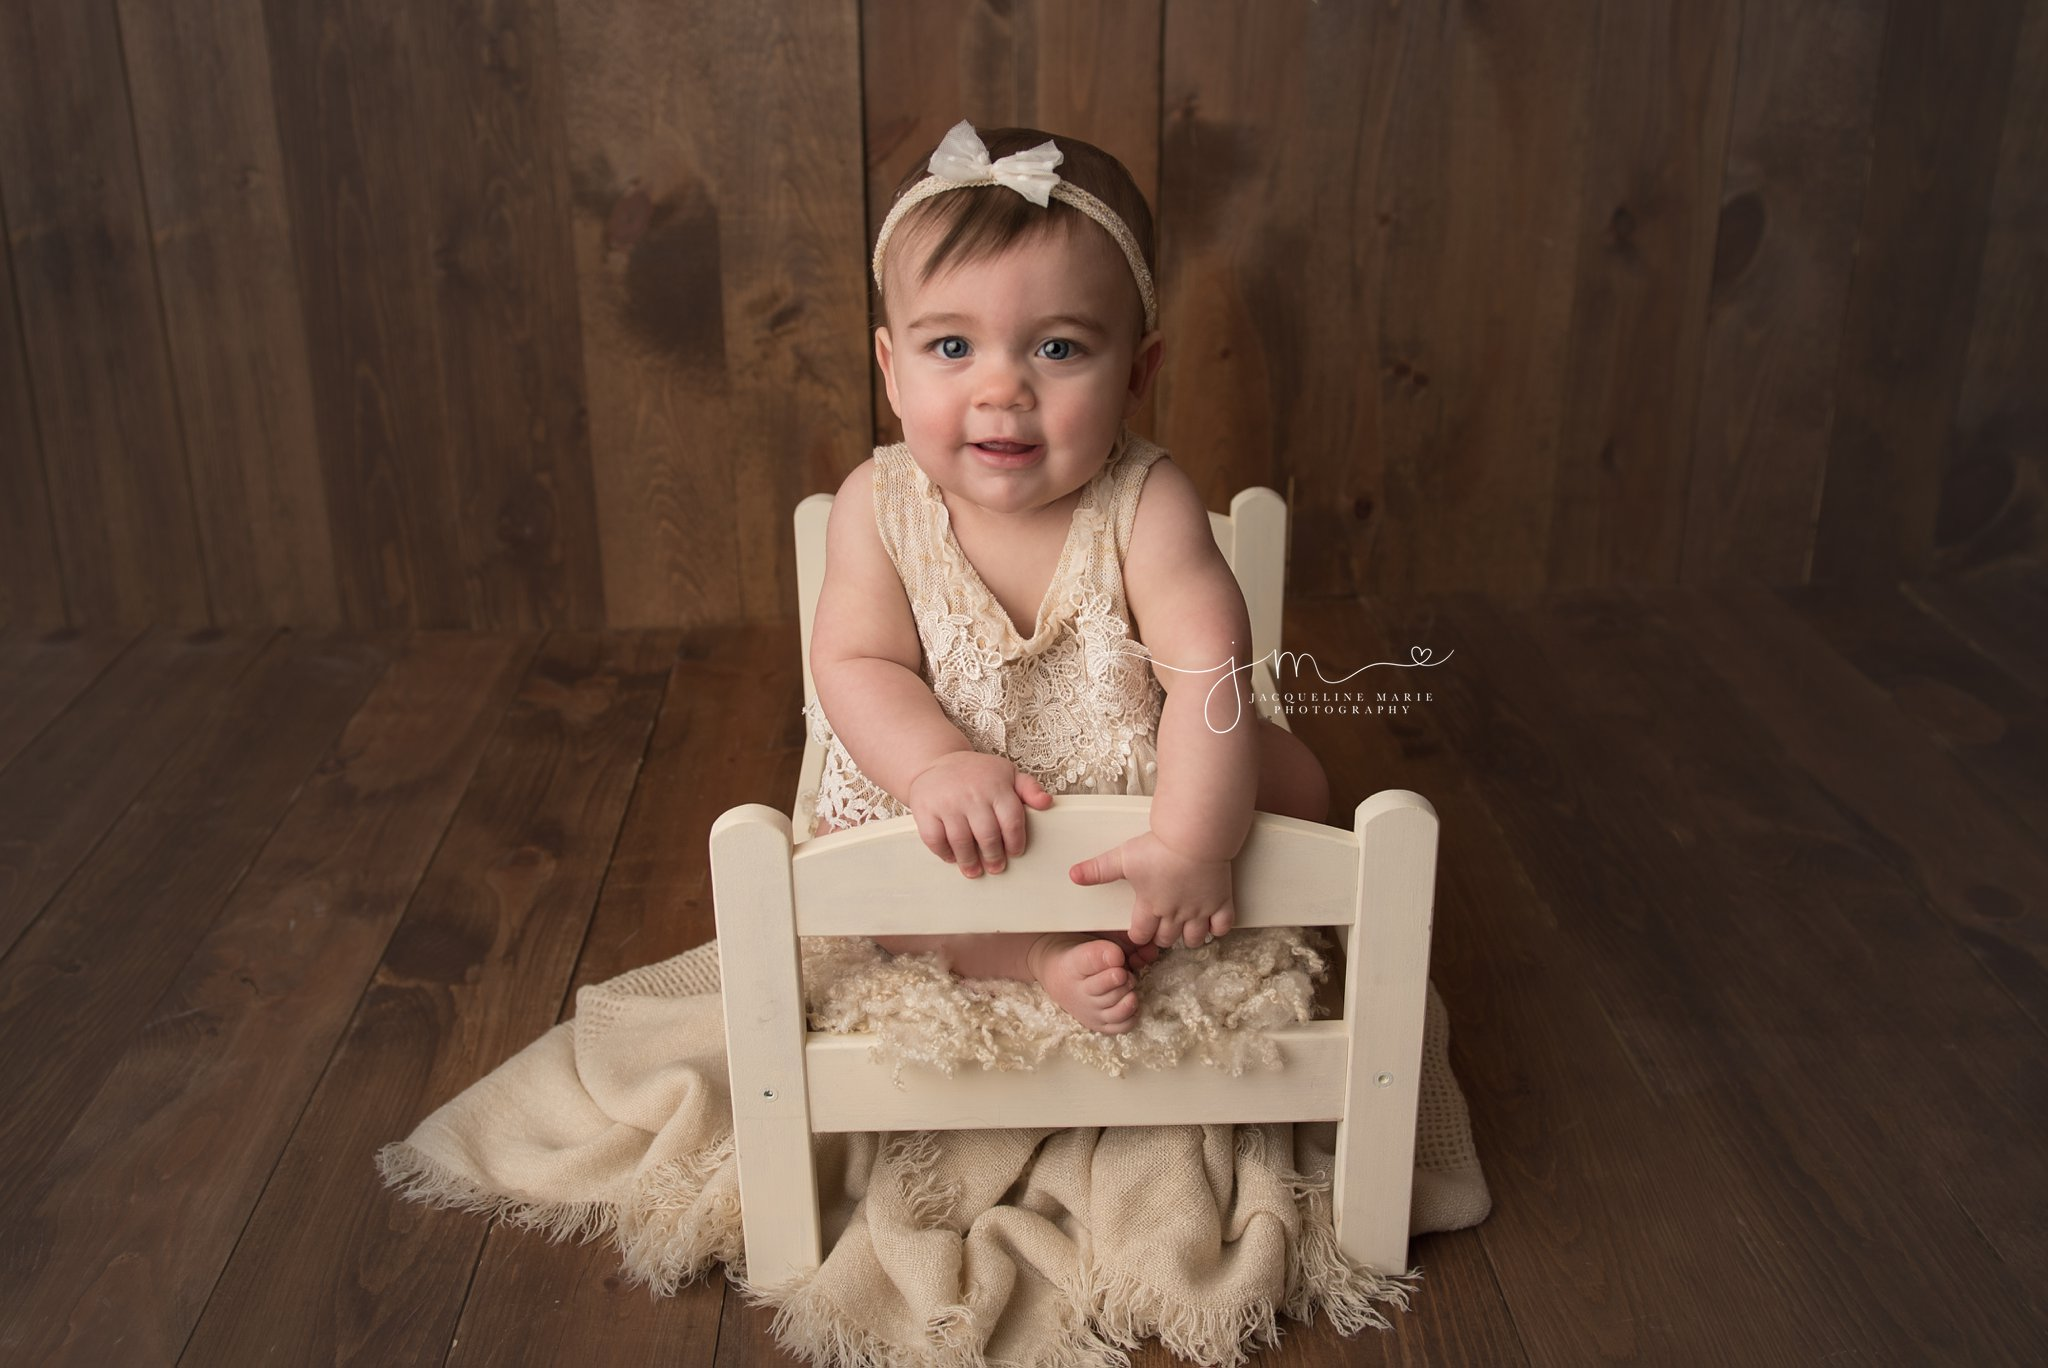 columbus ohio first birthday photographer features image of baby girl wearing cream bow for portrait session